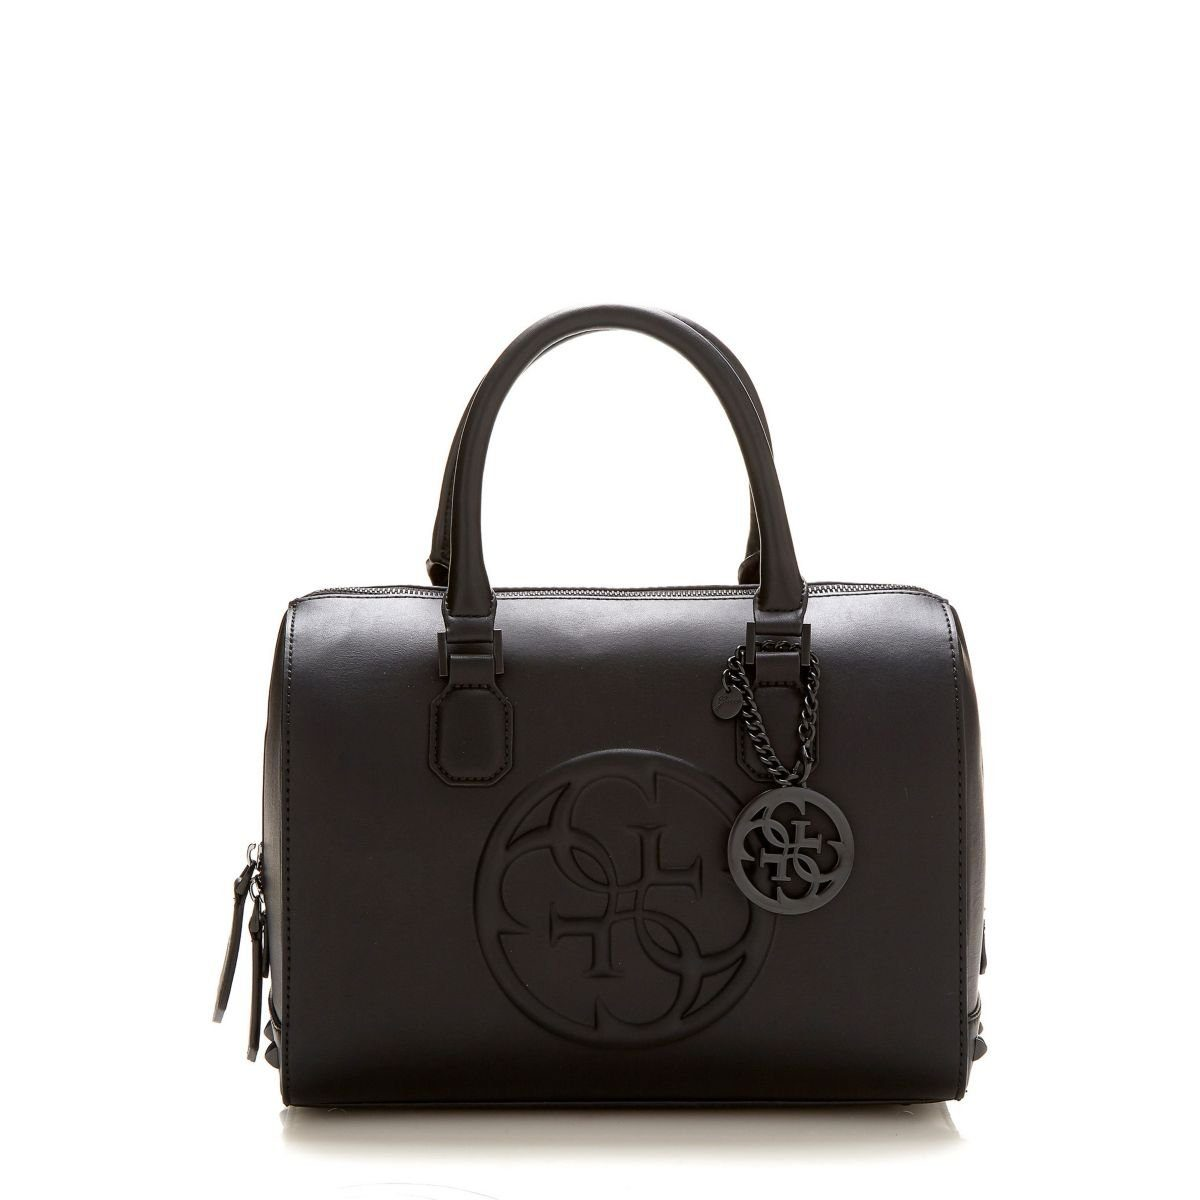 Guess BAULETTO-TASCHE KORRY LOGO 4G